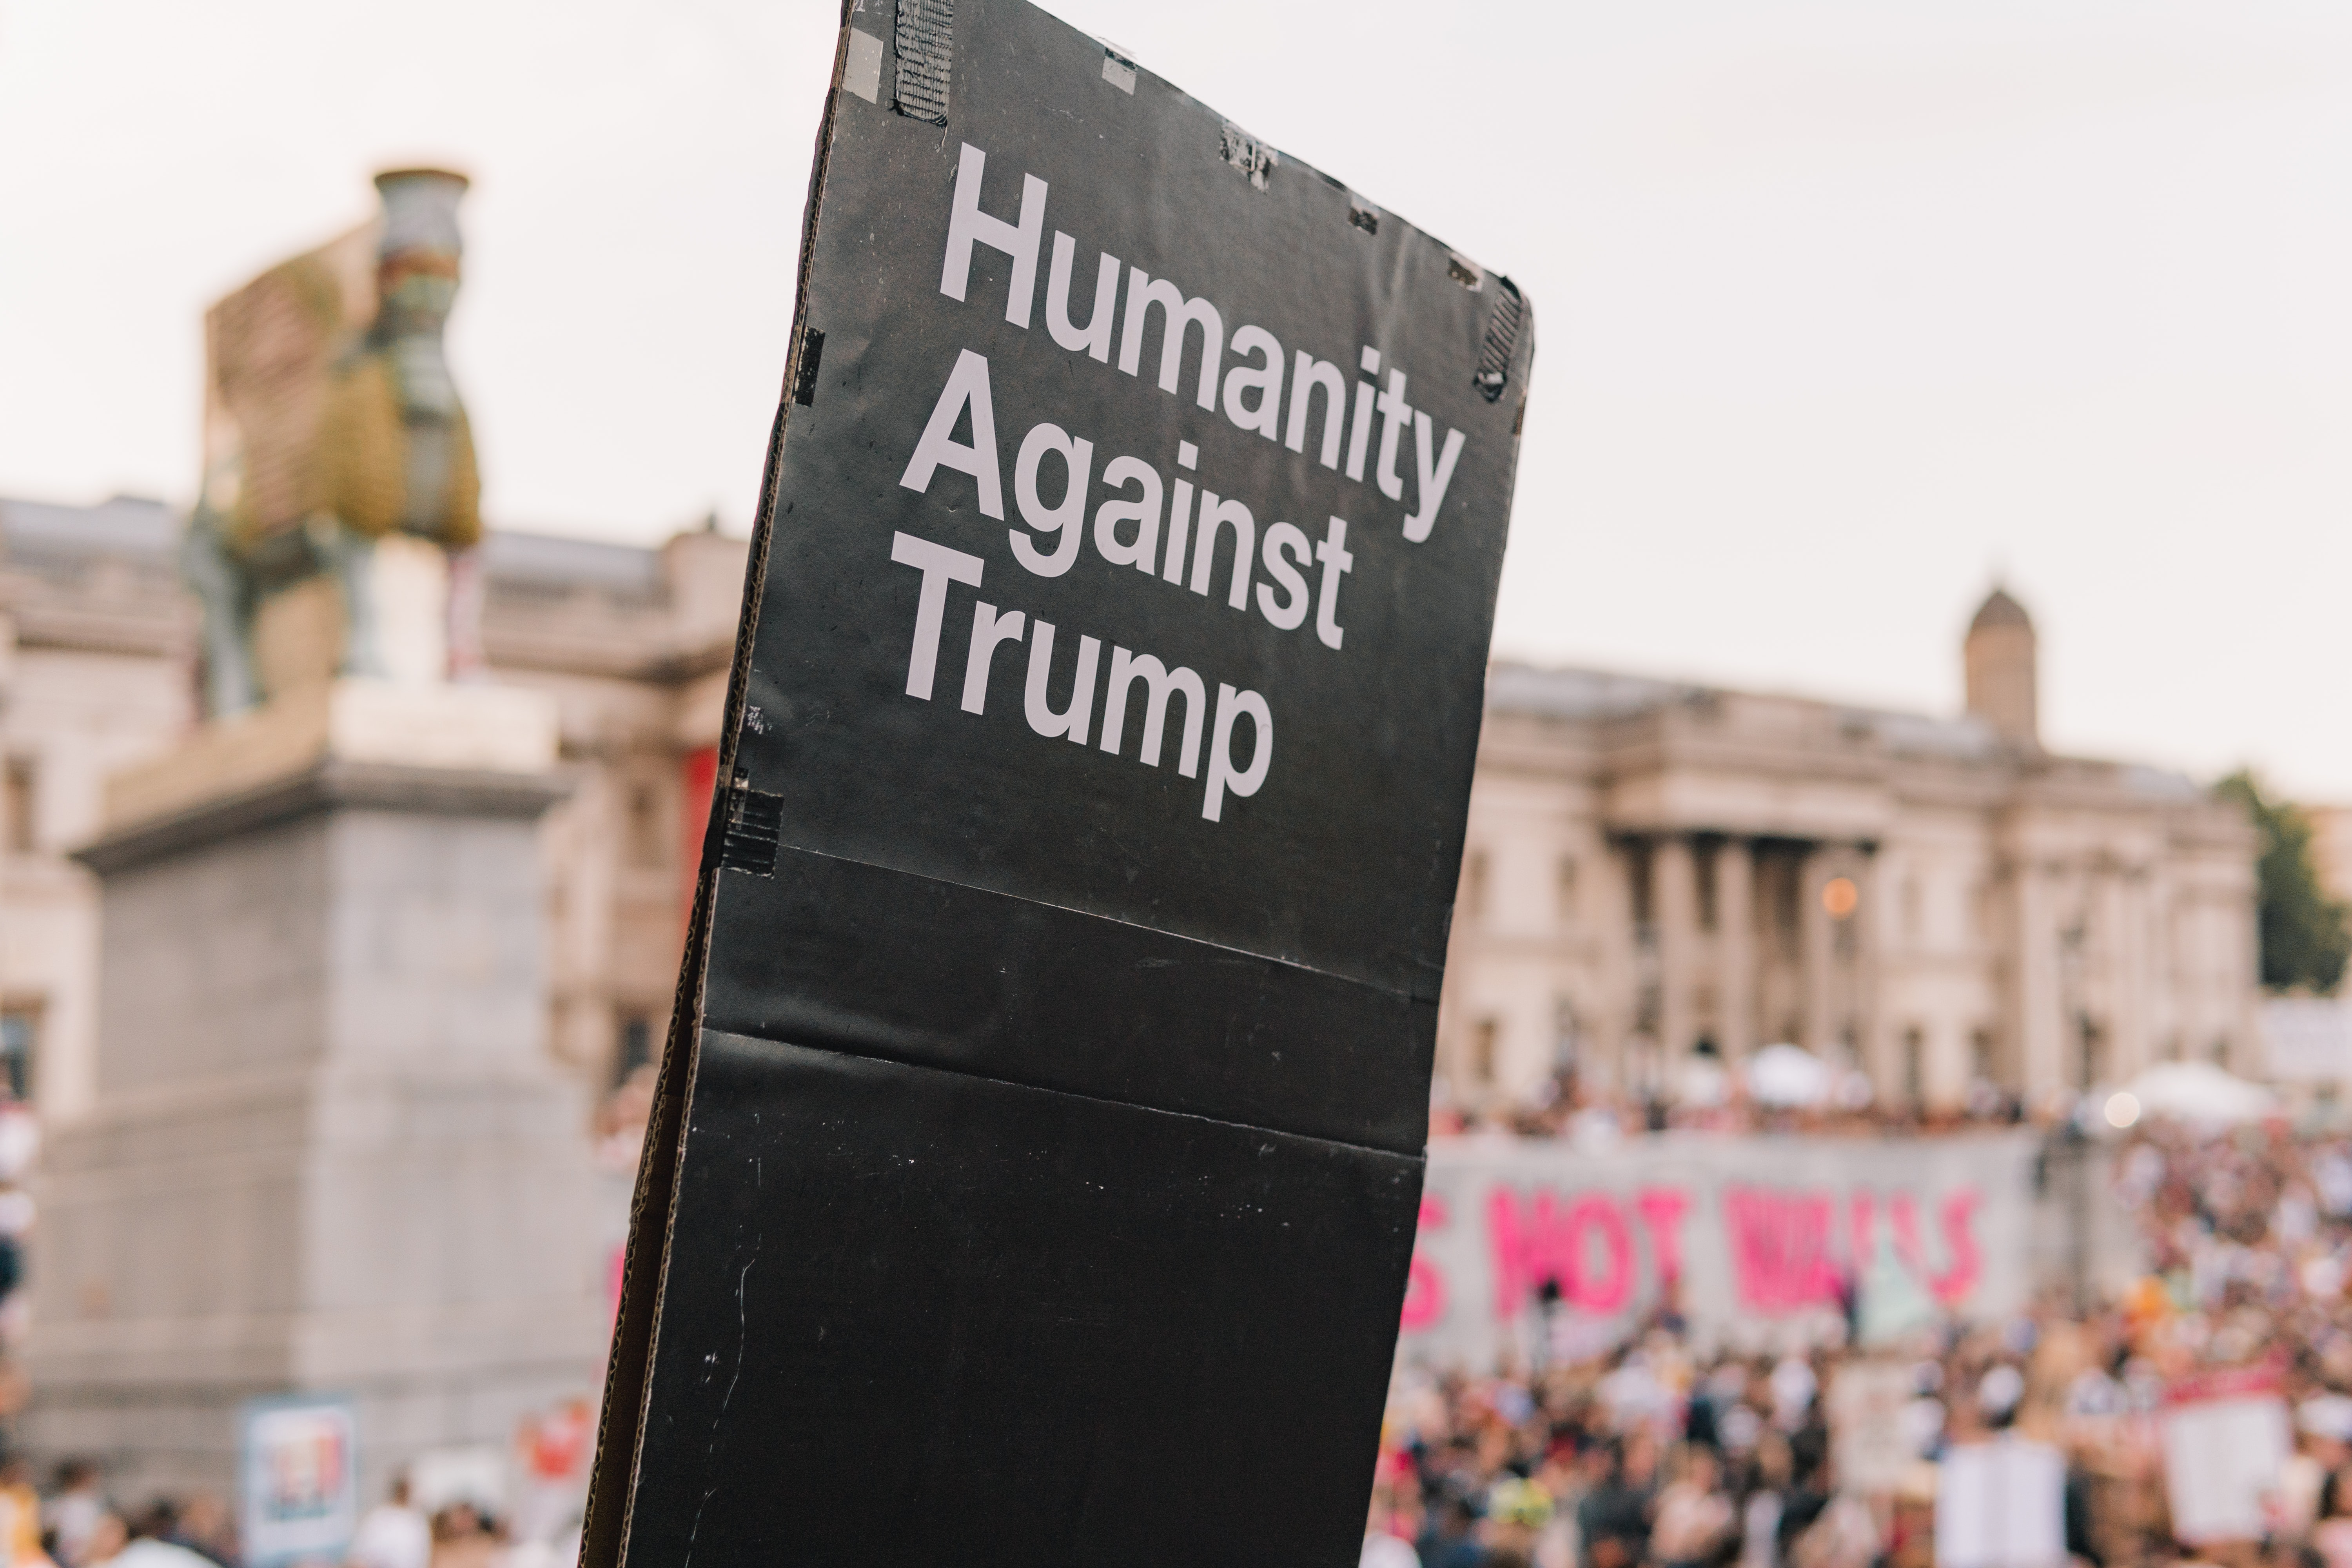 humanity against trump signage near buildings